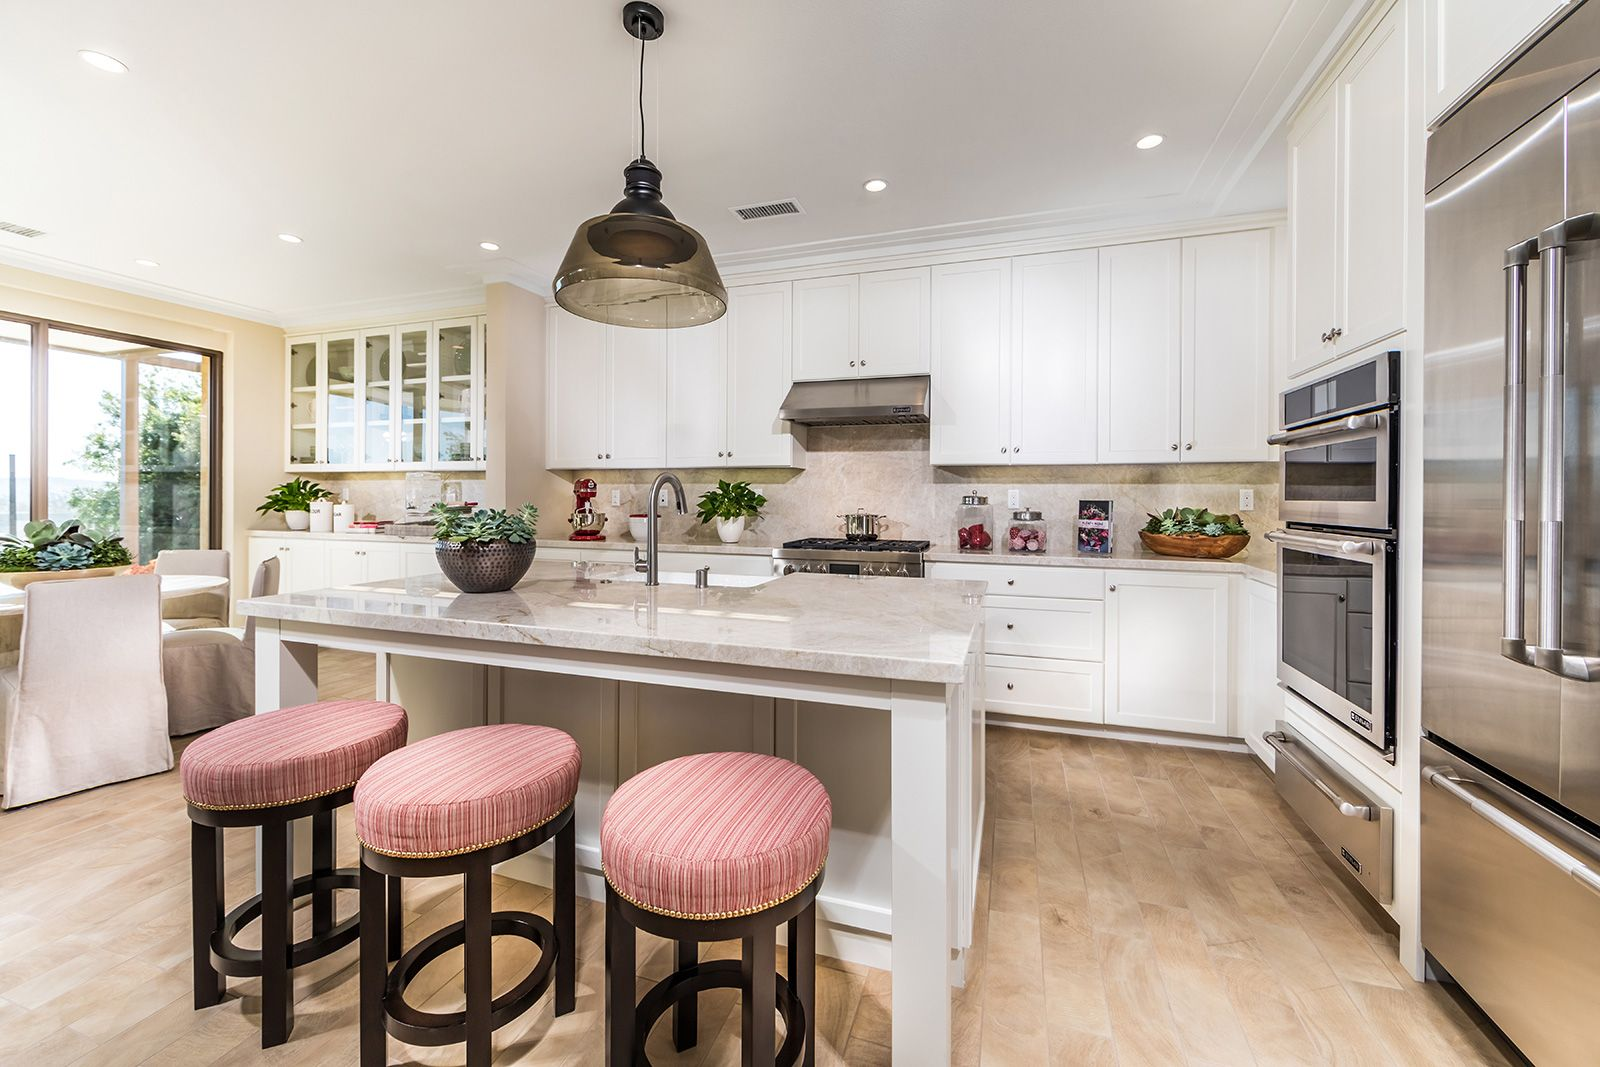 Kitchen featured in the Residence 2 By Irvine Pacific in Orange County, CA